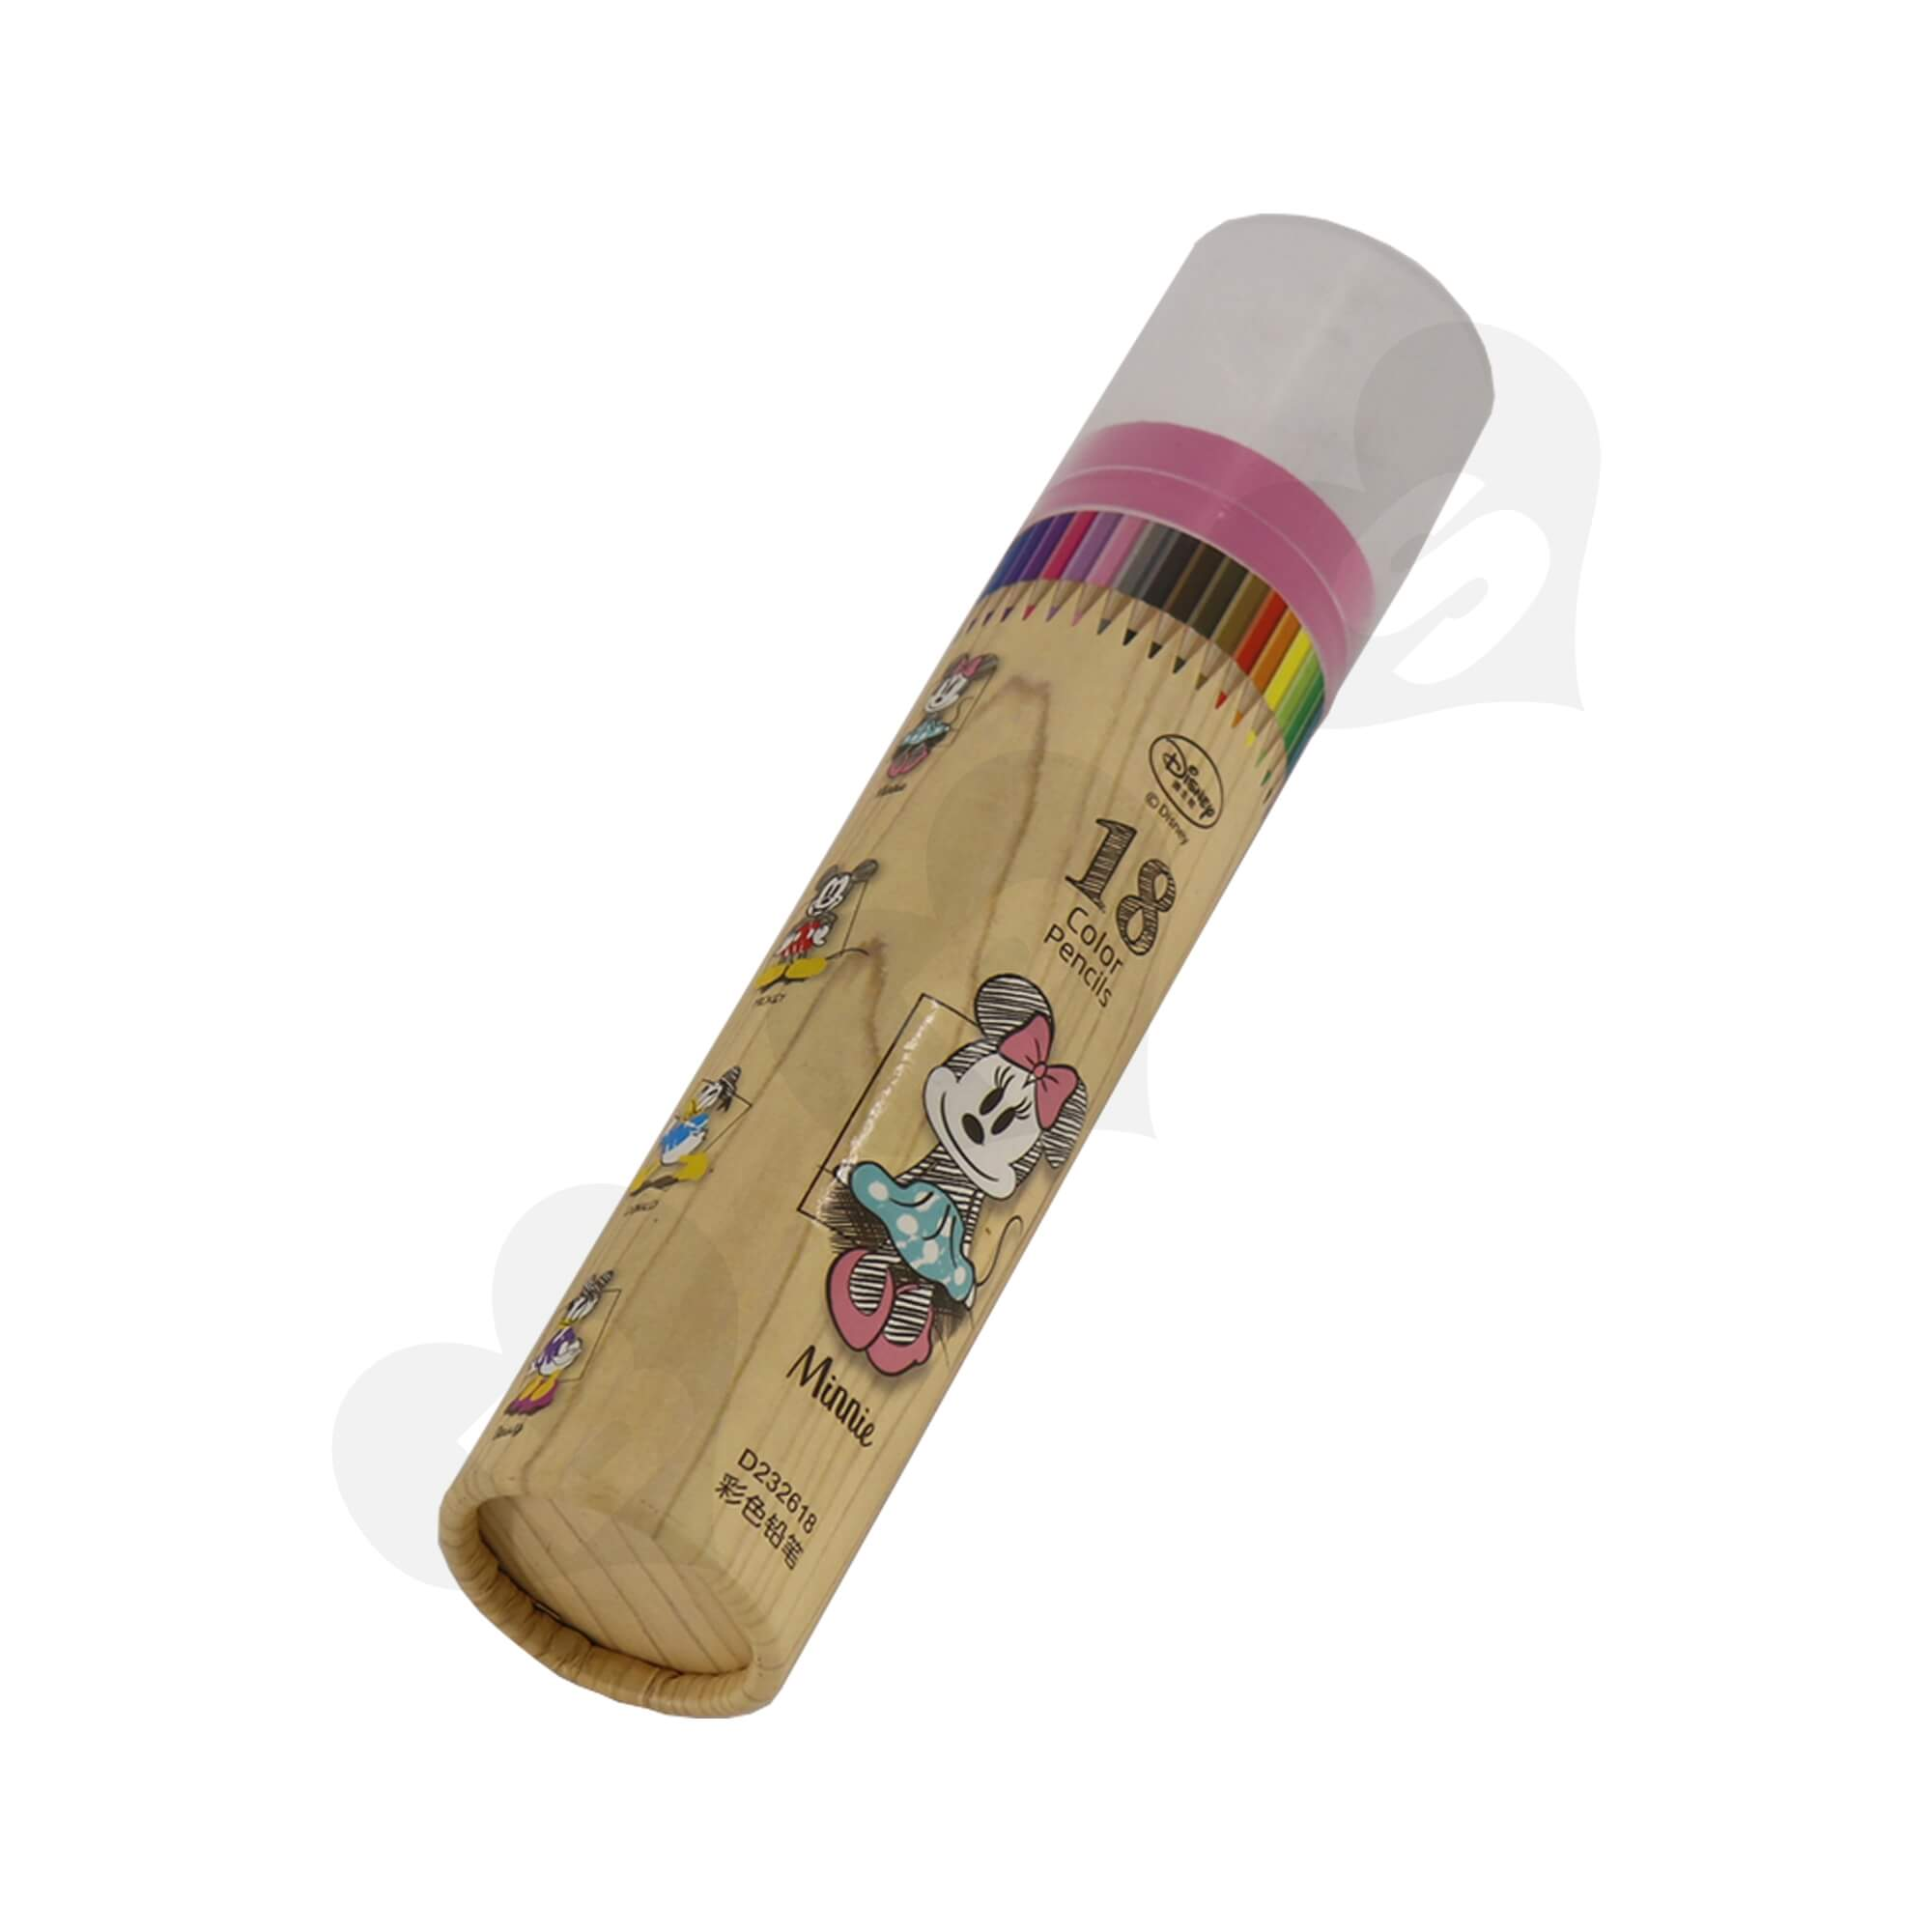 Branded Cardboard Cylinder With Plastic Lid For Packing Color Pencils Side View Two